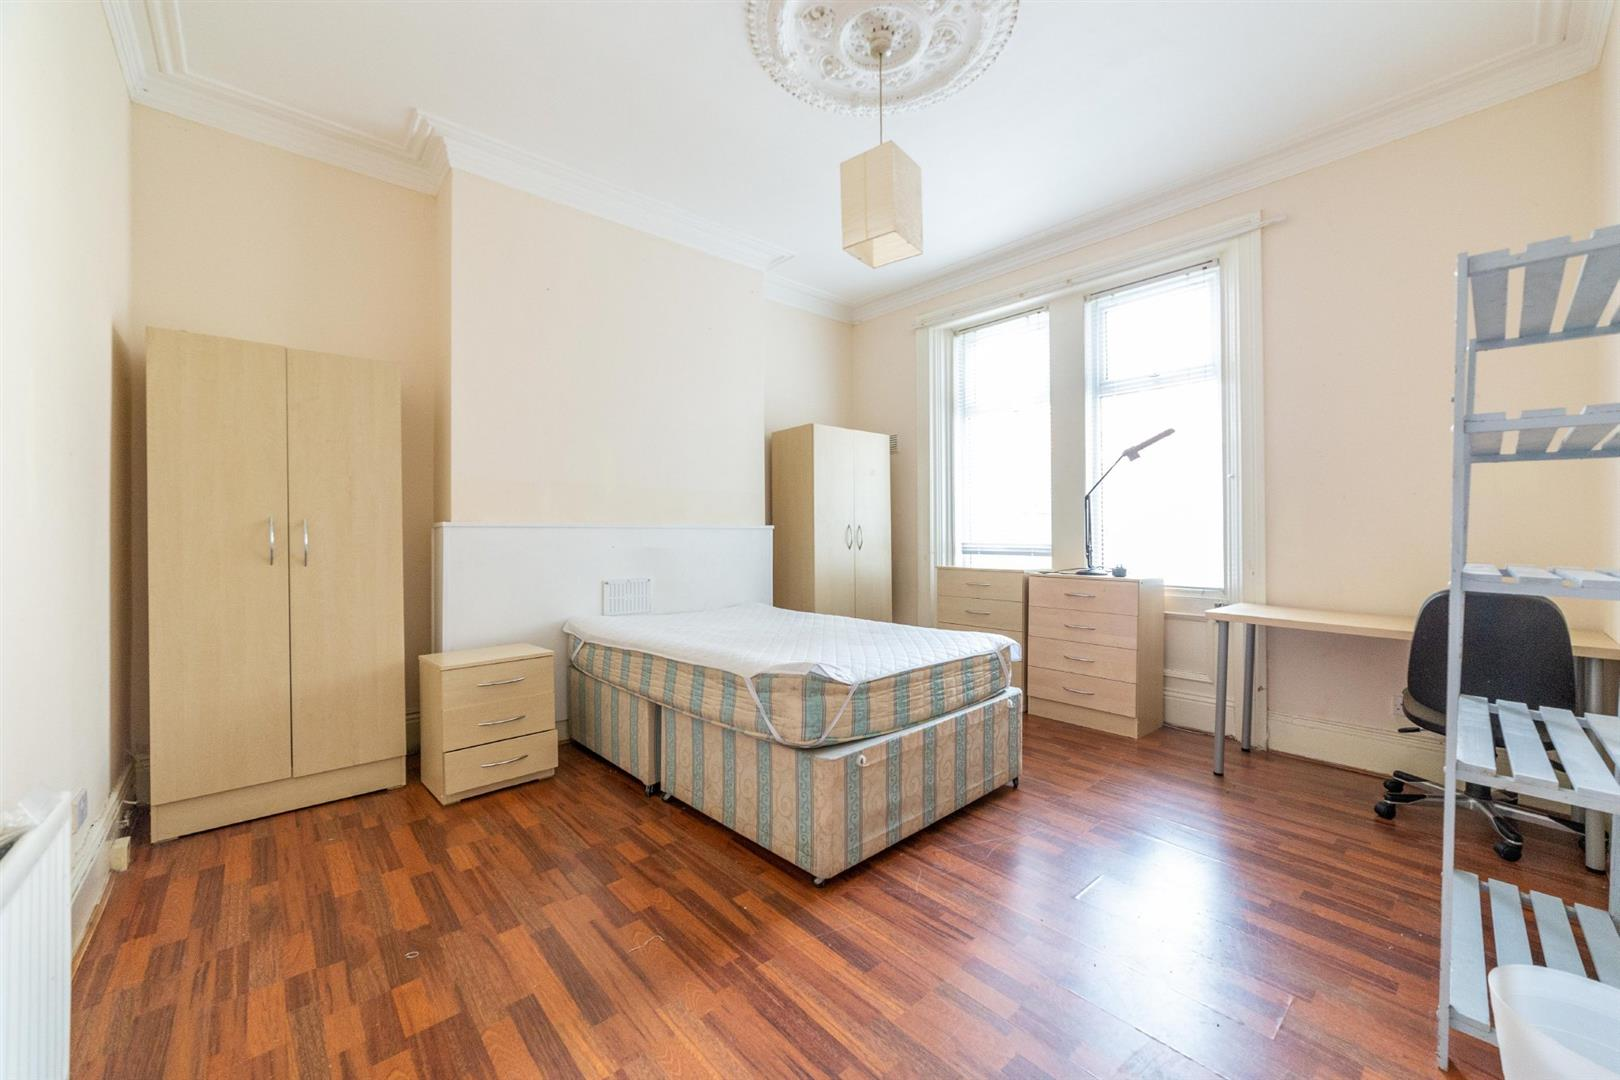 5 bed terraced house to rent in Newcastle Upon Tyne, NE6 5JY  - Property Image 3